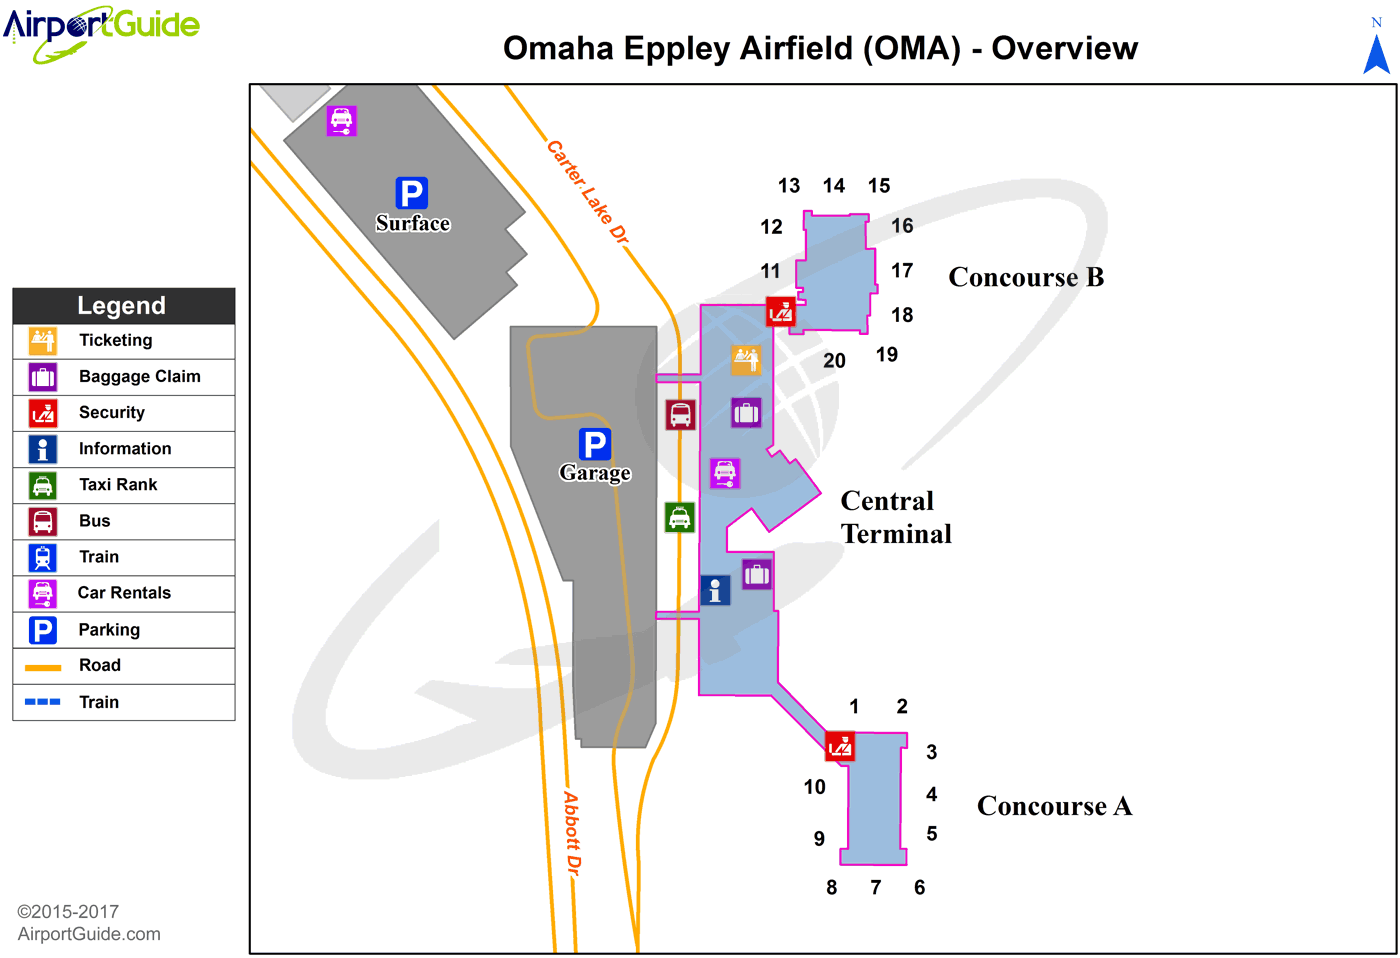 Omaha - Eppley Airfield (OMA) Airport Terminal Map - Overview